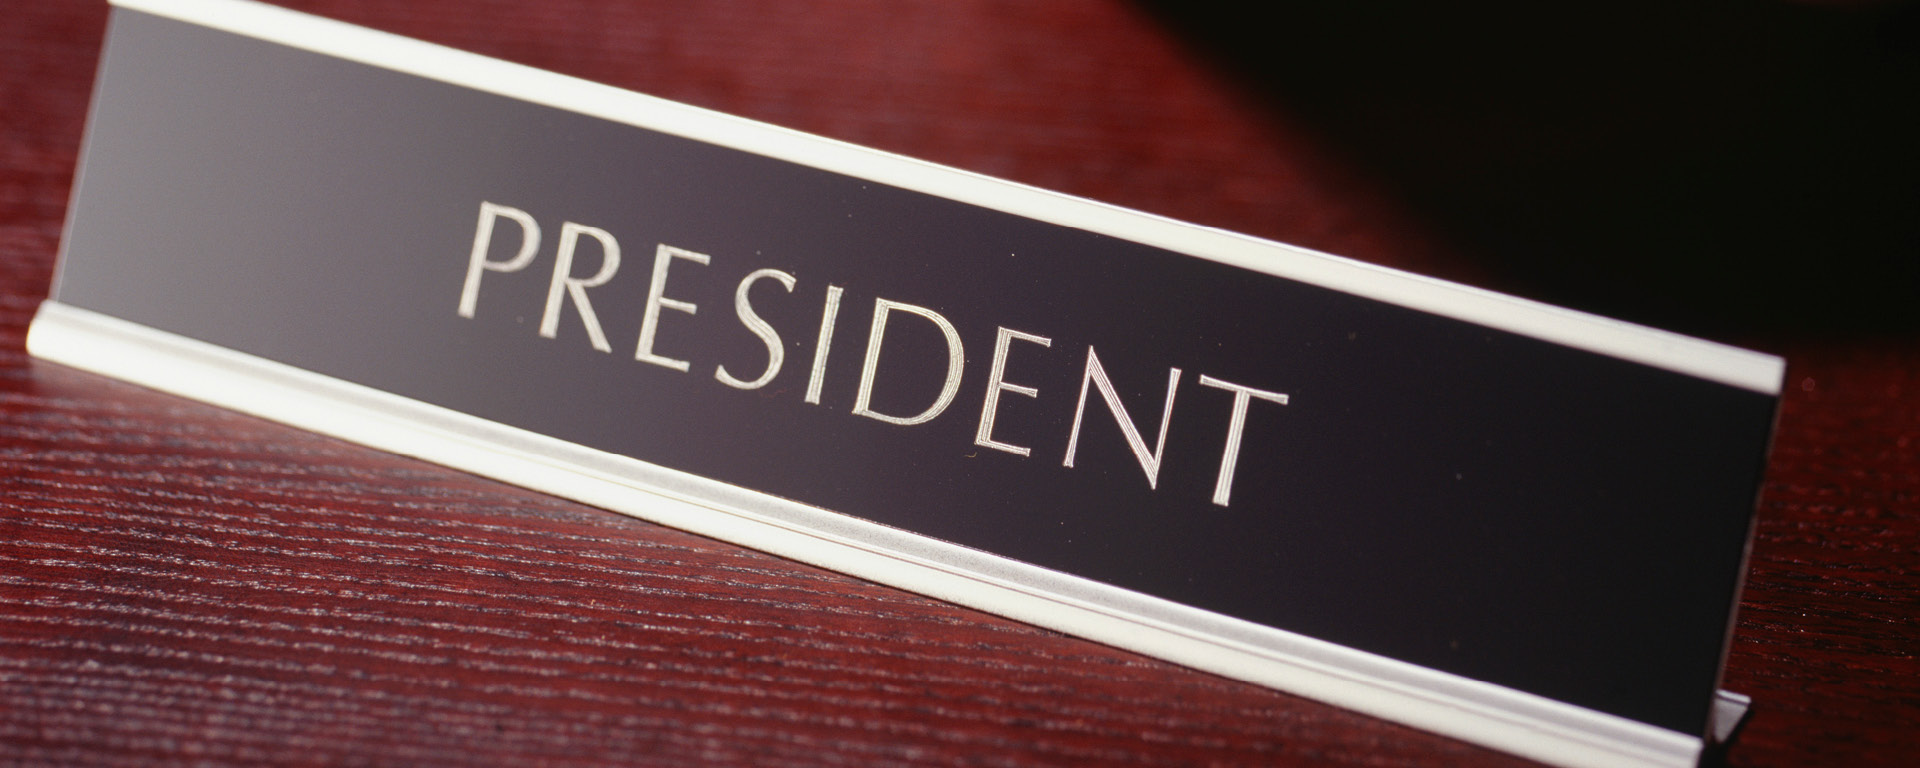 desk sign saying president